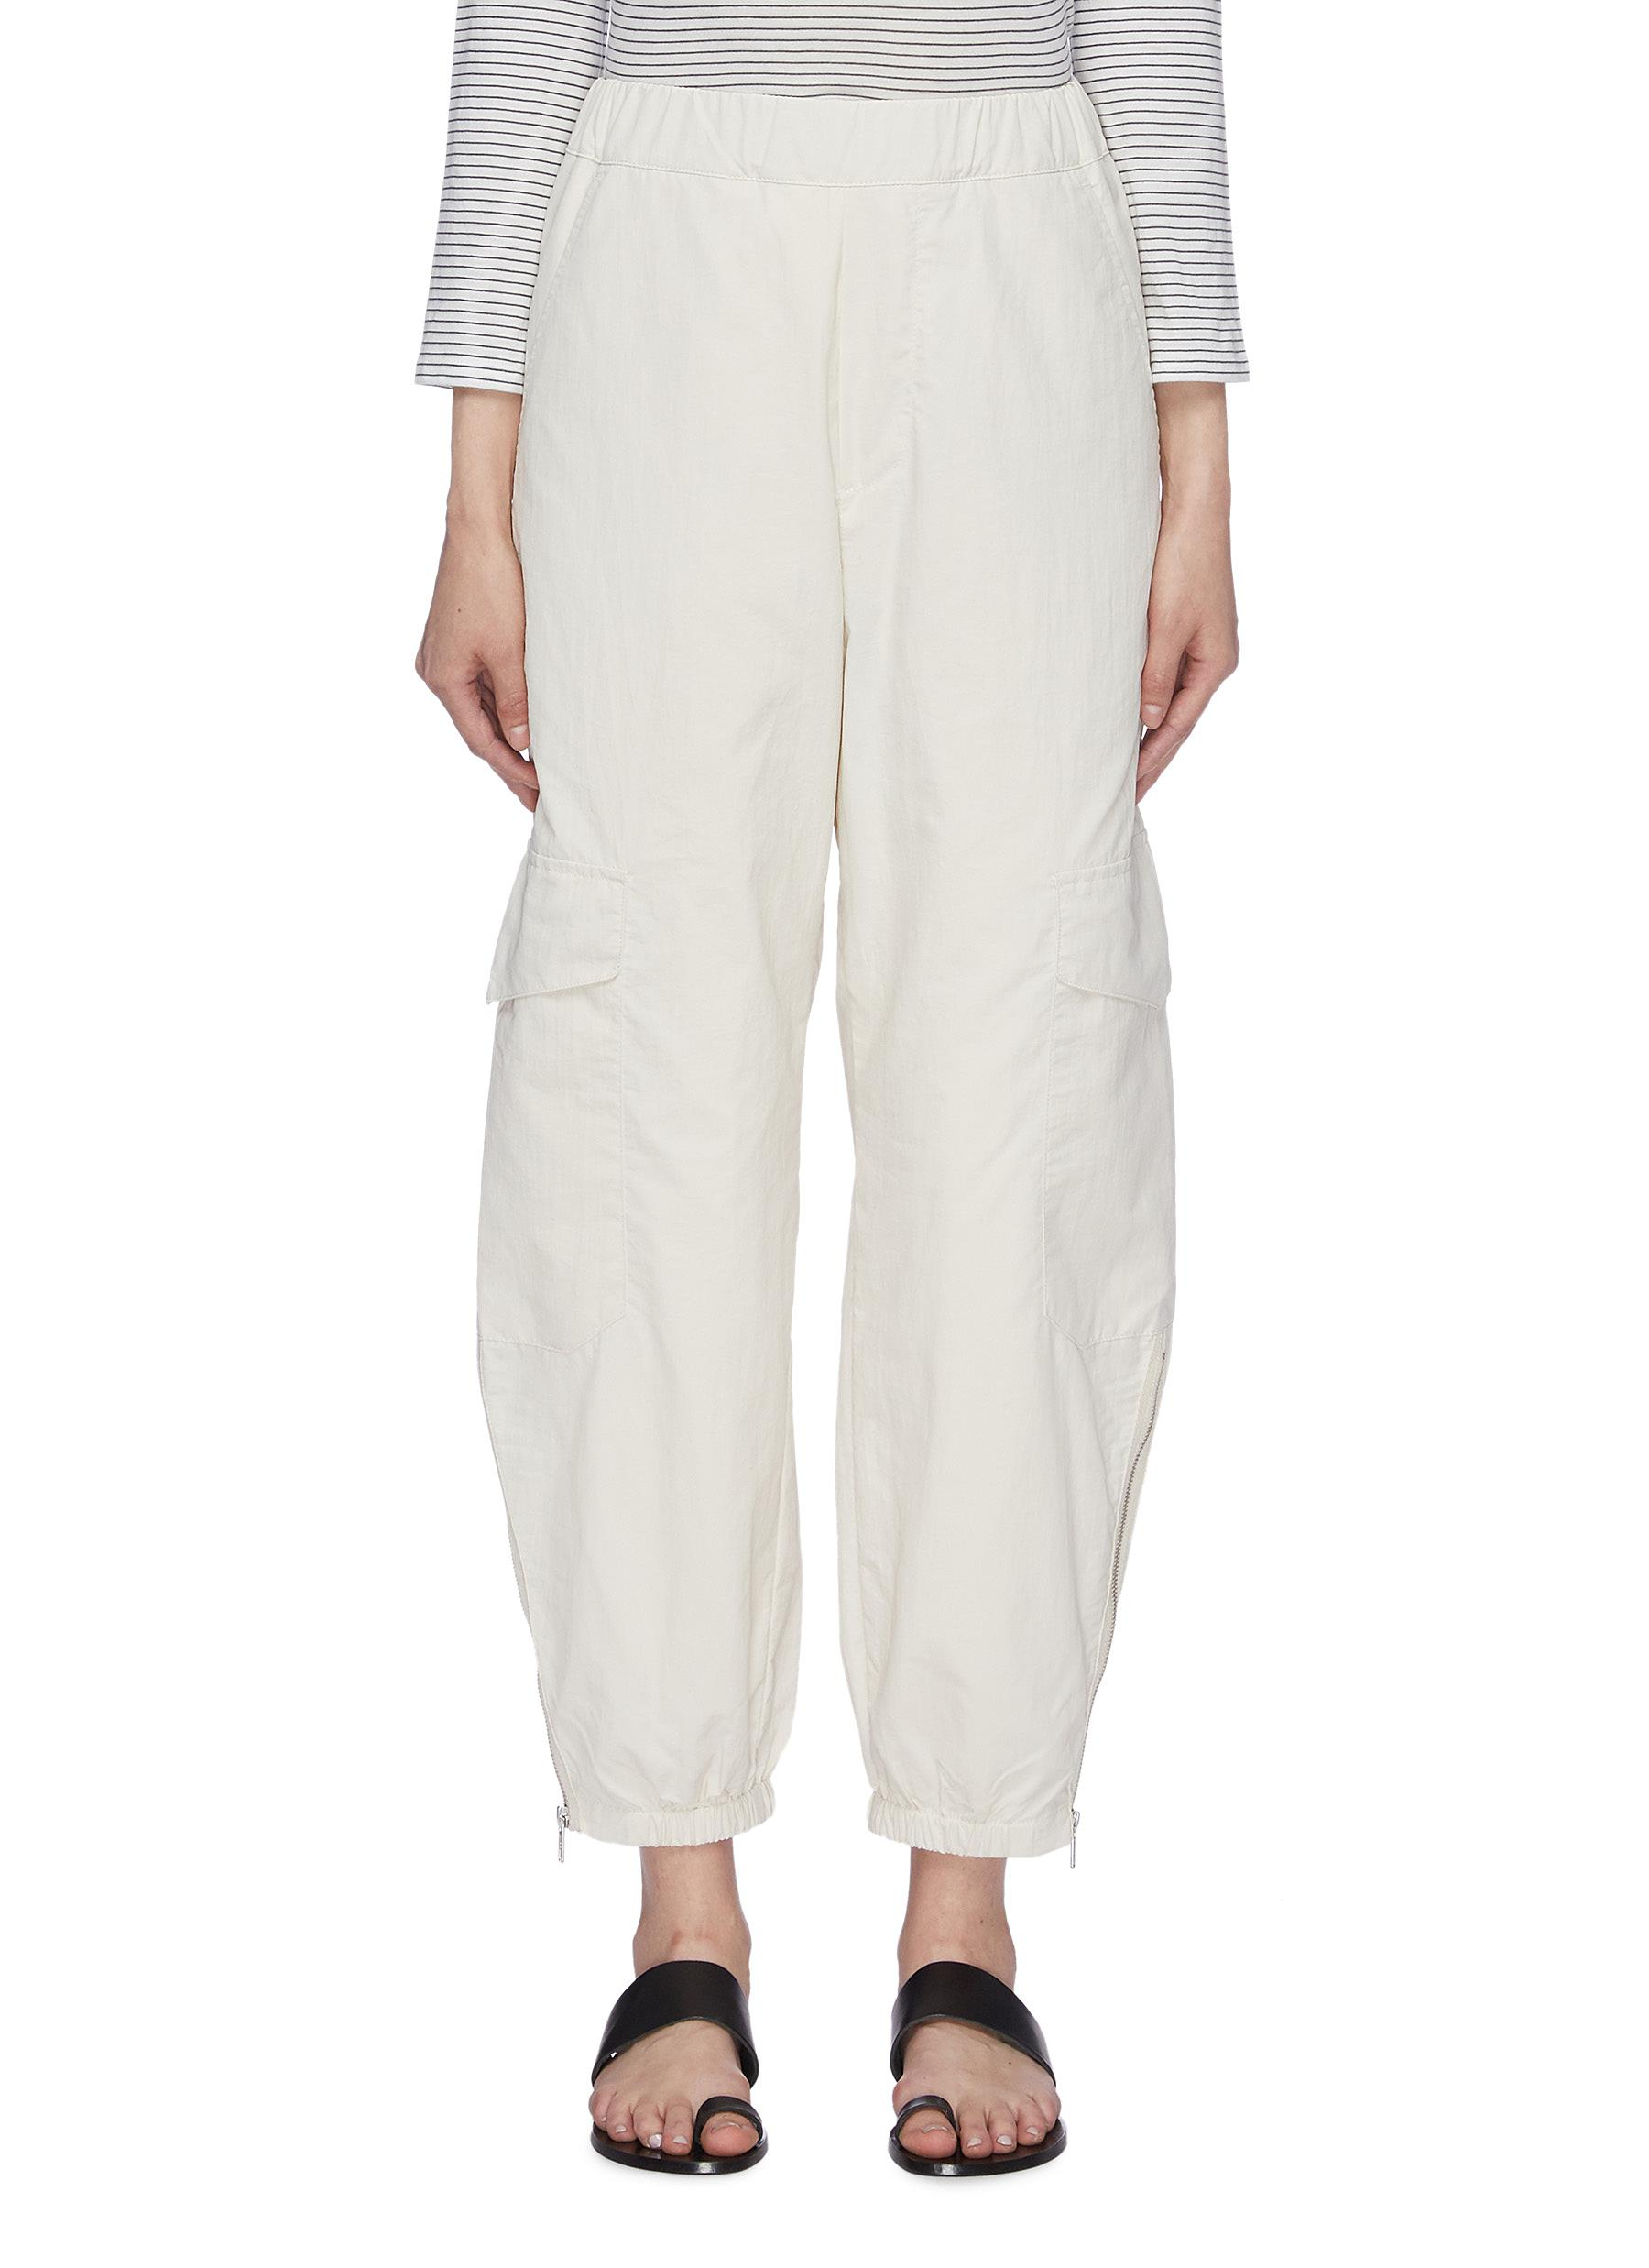 Pluvia zip cuff cargo pants by Barena